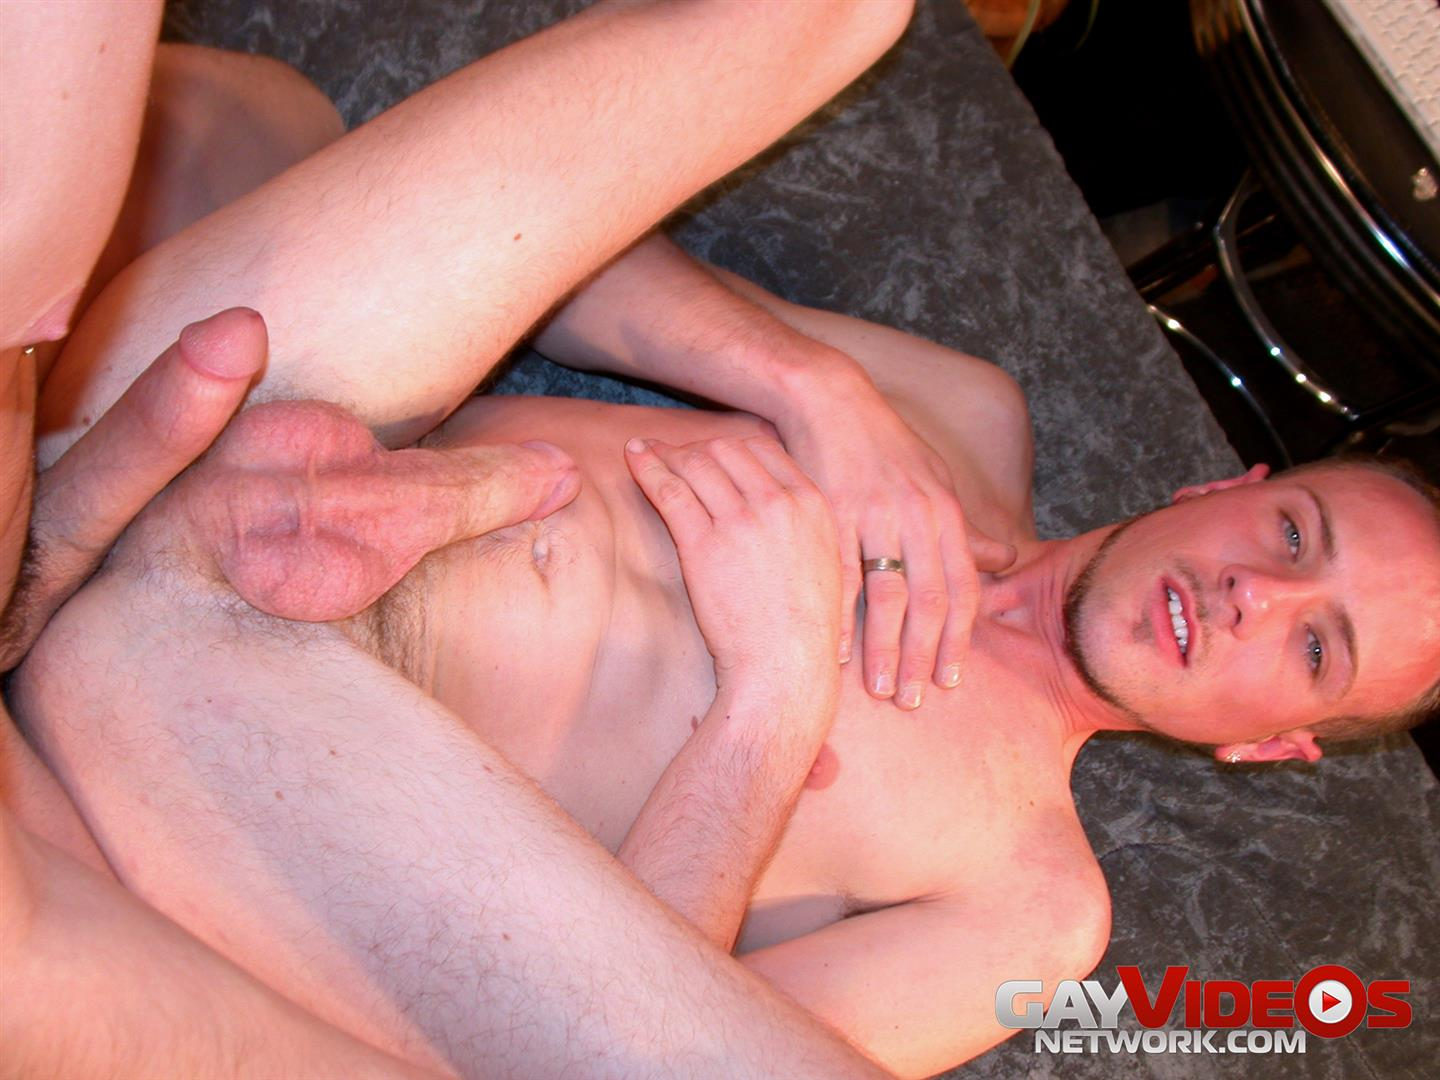 Gay-Videos-Network-Cameron-Taylor-and-Jordan-McCay-and-Tyler-Young-Redneck-Cock-Naked-Guys-Amateur-Gay-Porn-24 Southern Redneck Boys Sucking Cock And Fucking Ass